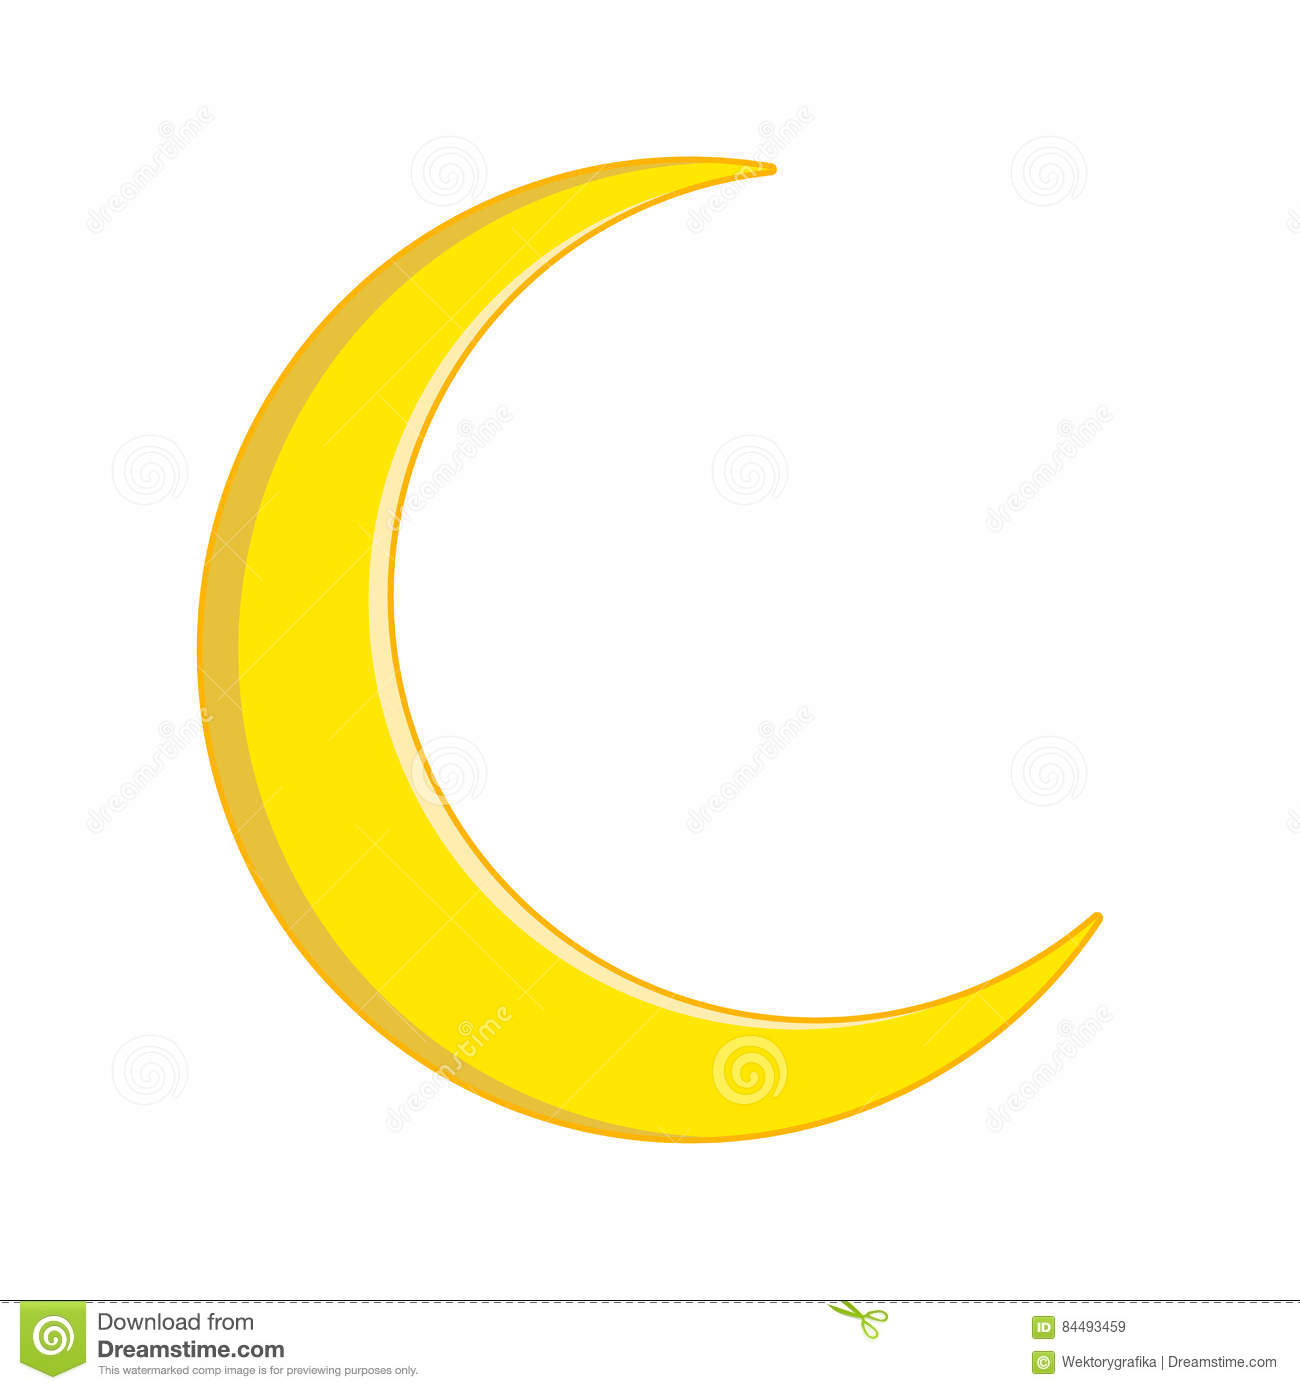 Crescent moon vector symbol icon design stock vector crescent moon vector symbol icon design buycottarizona Image collections